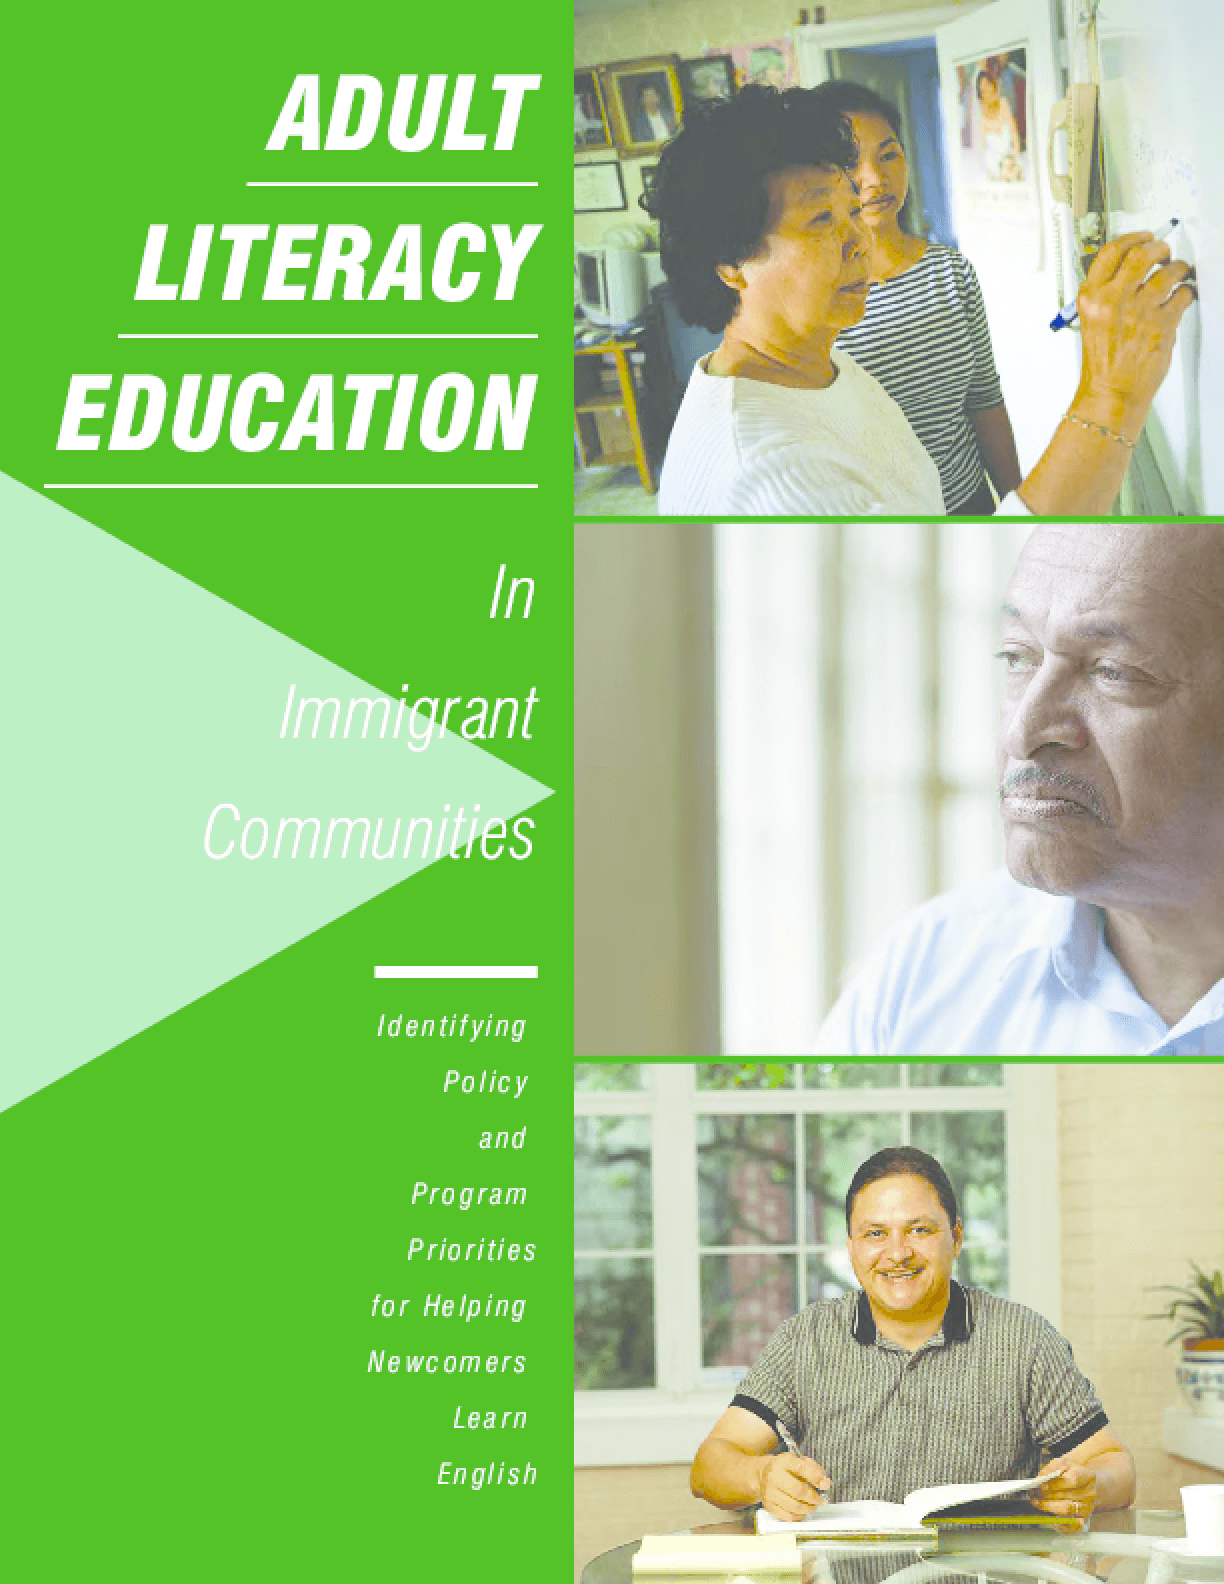 Adult Literacy Education In Immigrant Communities